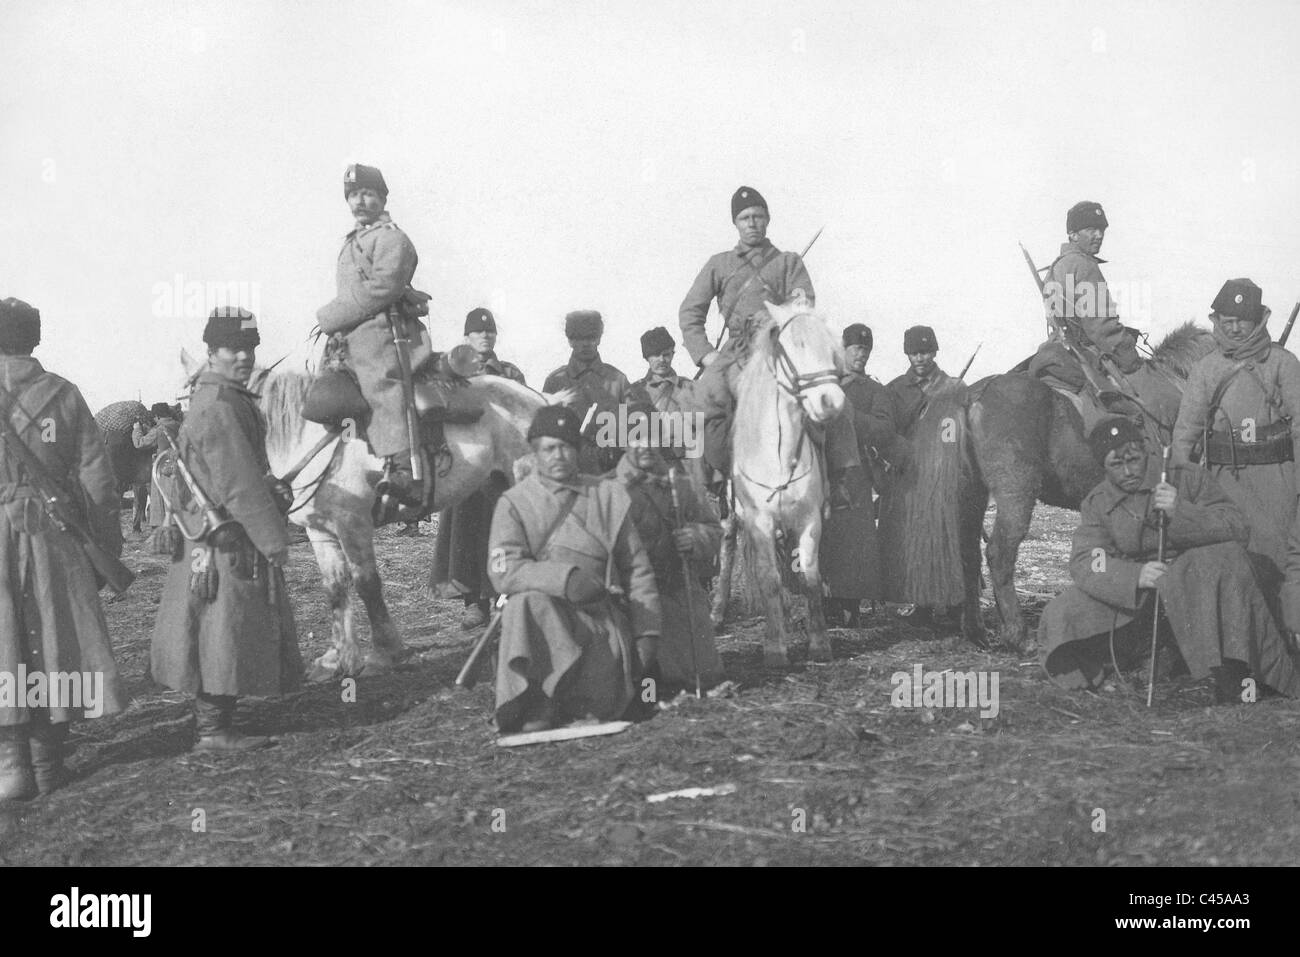 Russian soldiers in the Russo-Japanese war, 1904 - Stock Image